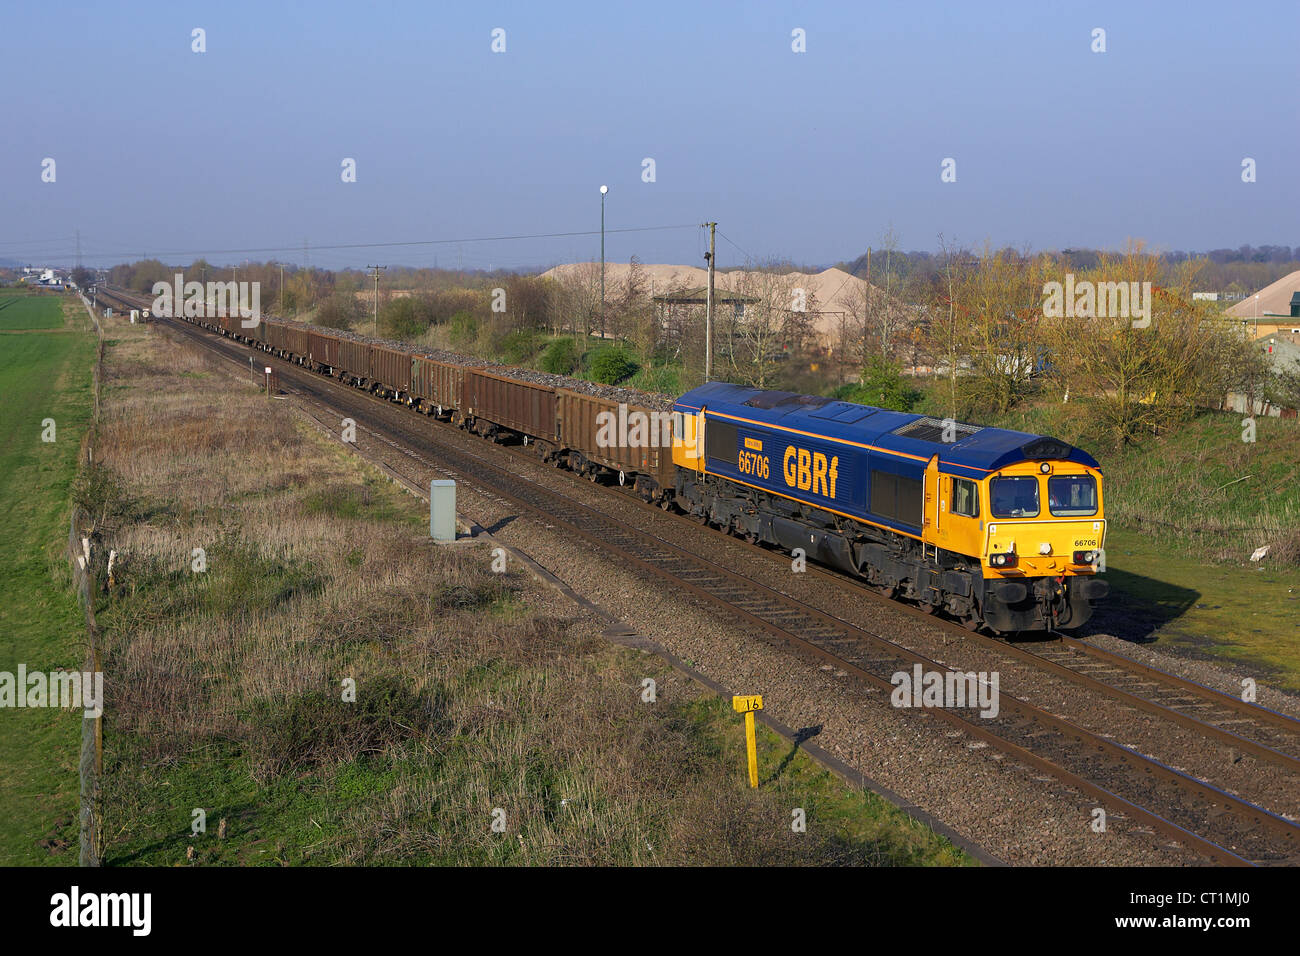 A GBRF great british railfreight scrap train heads south at wycnor juncion - Stock Image